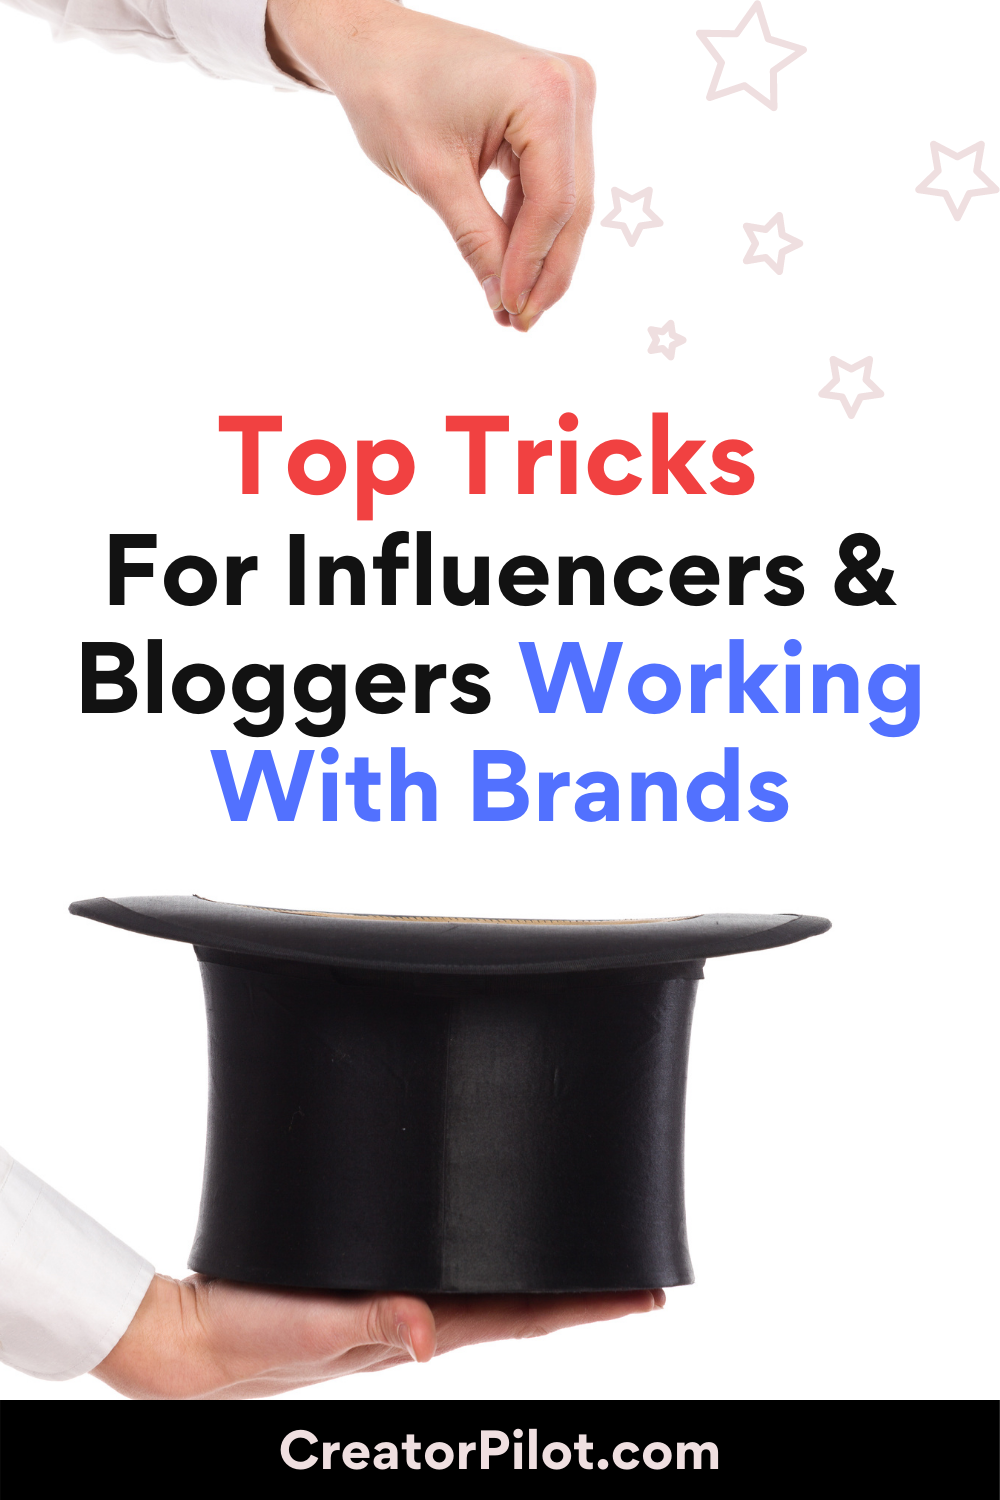 Top Tricks for Influencers working with brands